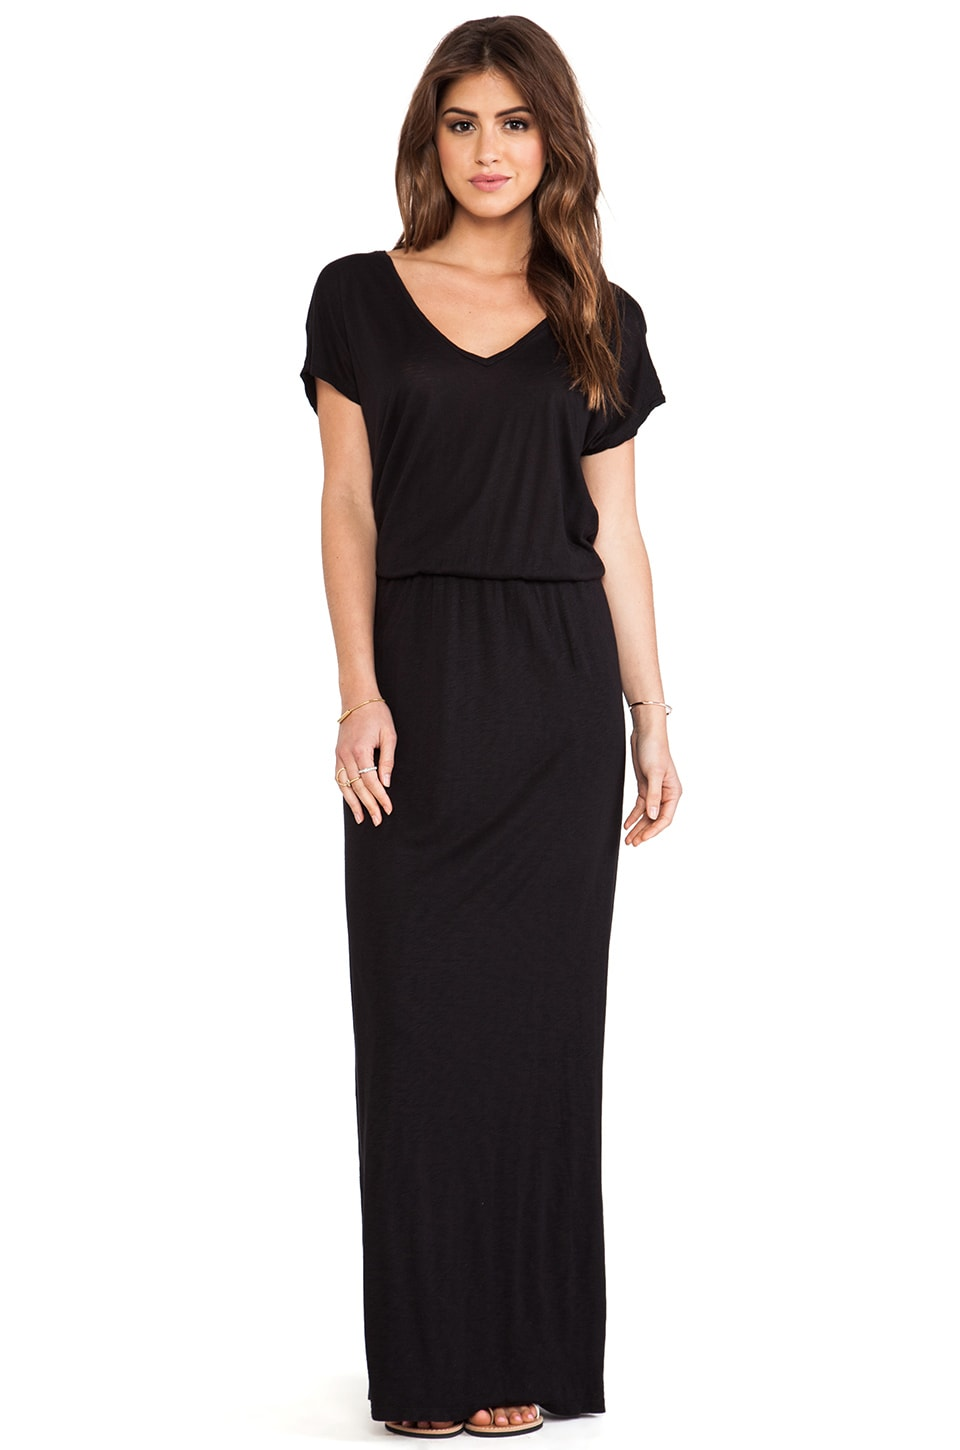 Velvet by Graham & Spencer Lizia Luxe Slub Maxi Dress in Black